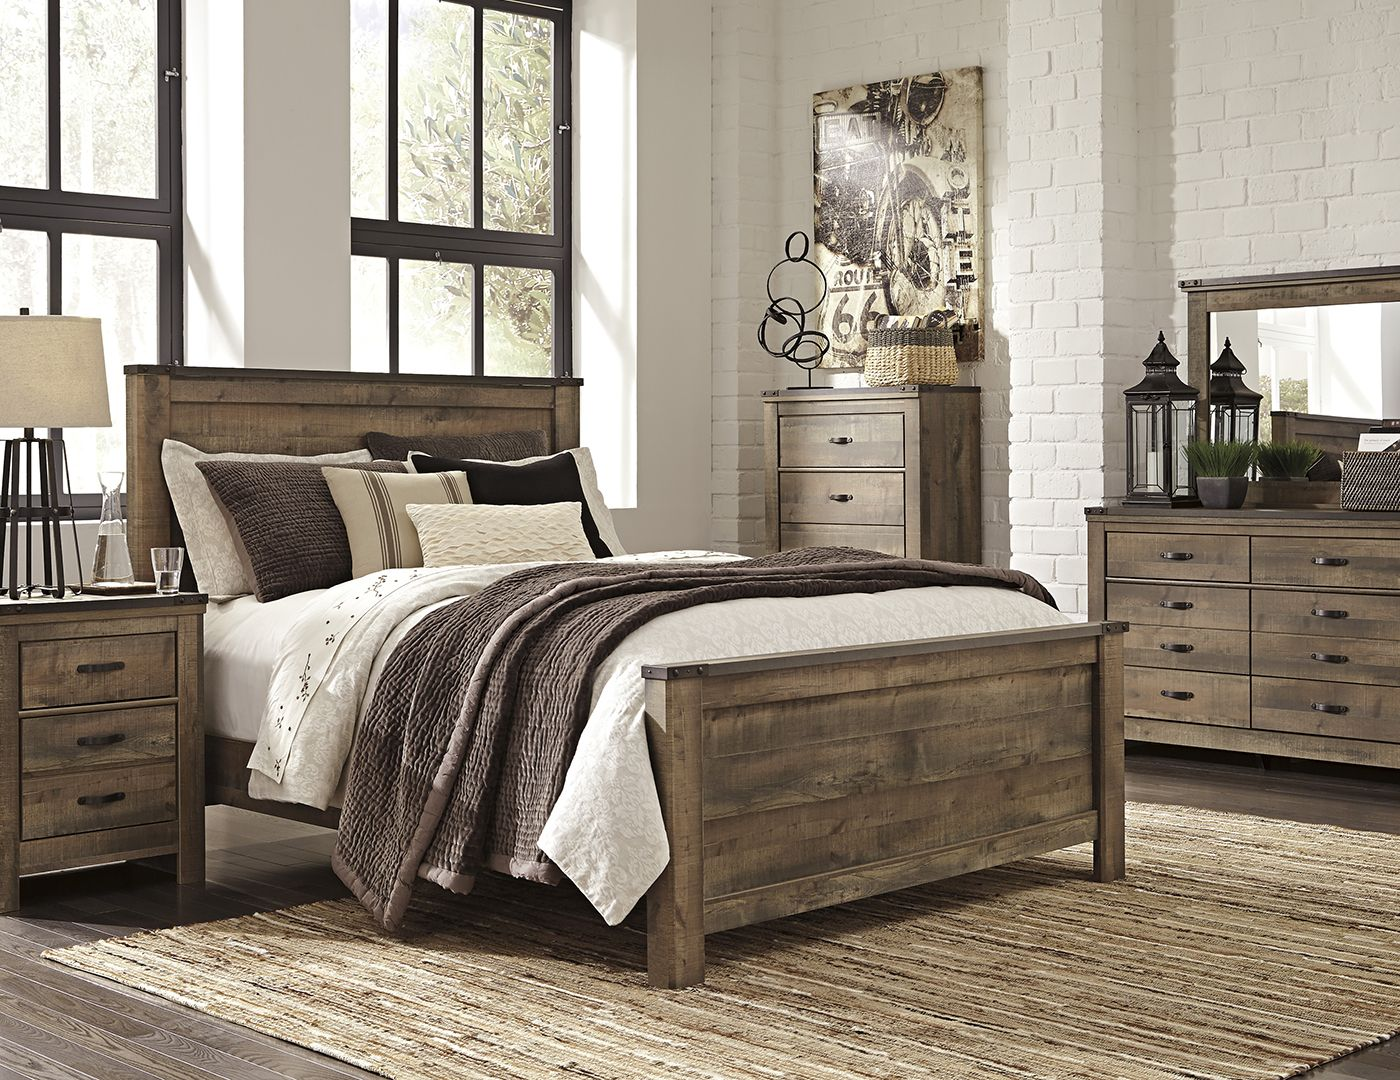 Trinell 5-pc. Queen Bedroom Set | Pinterest